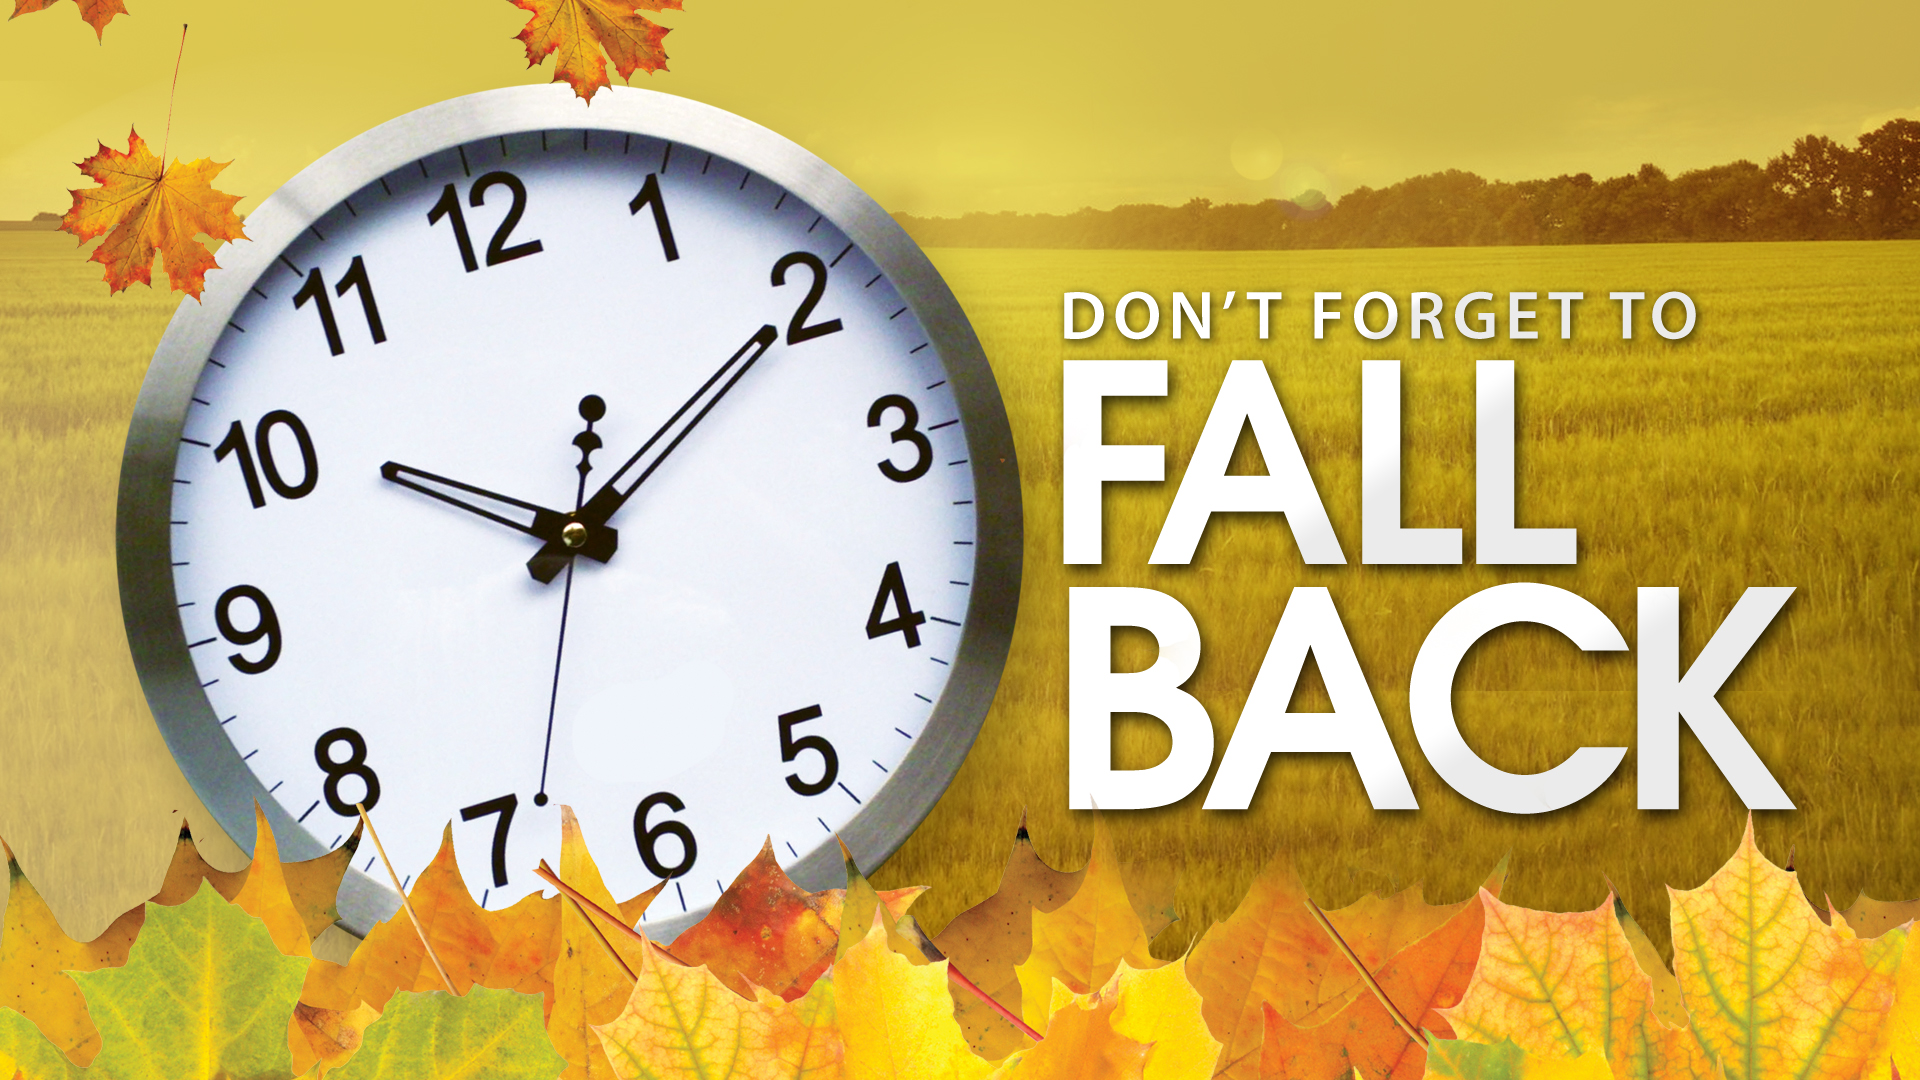 Daylight Savings Time Is Scheduled For This Sunday November 2nd